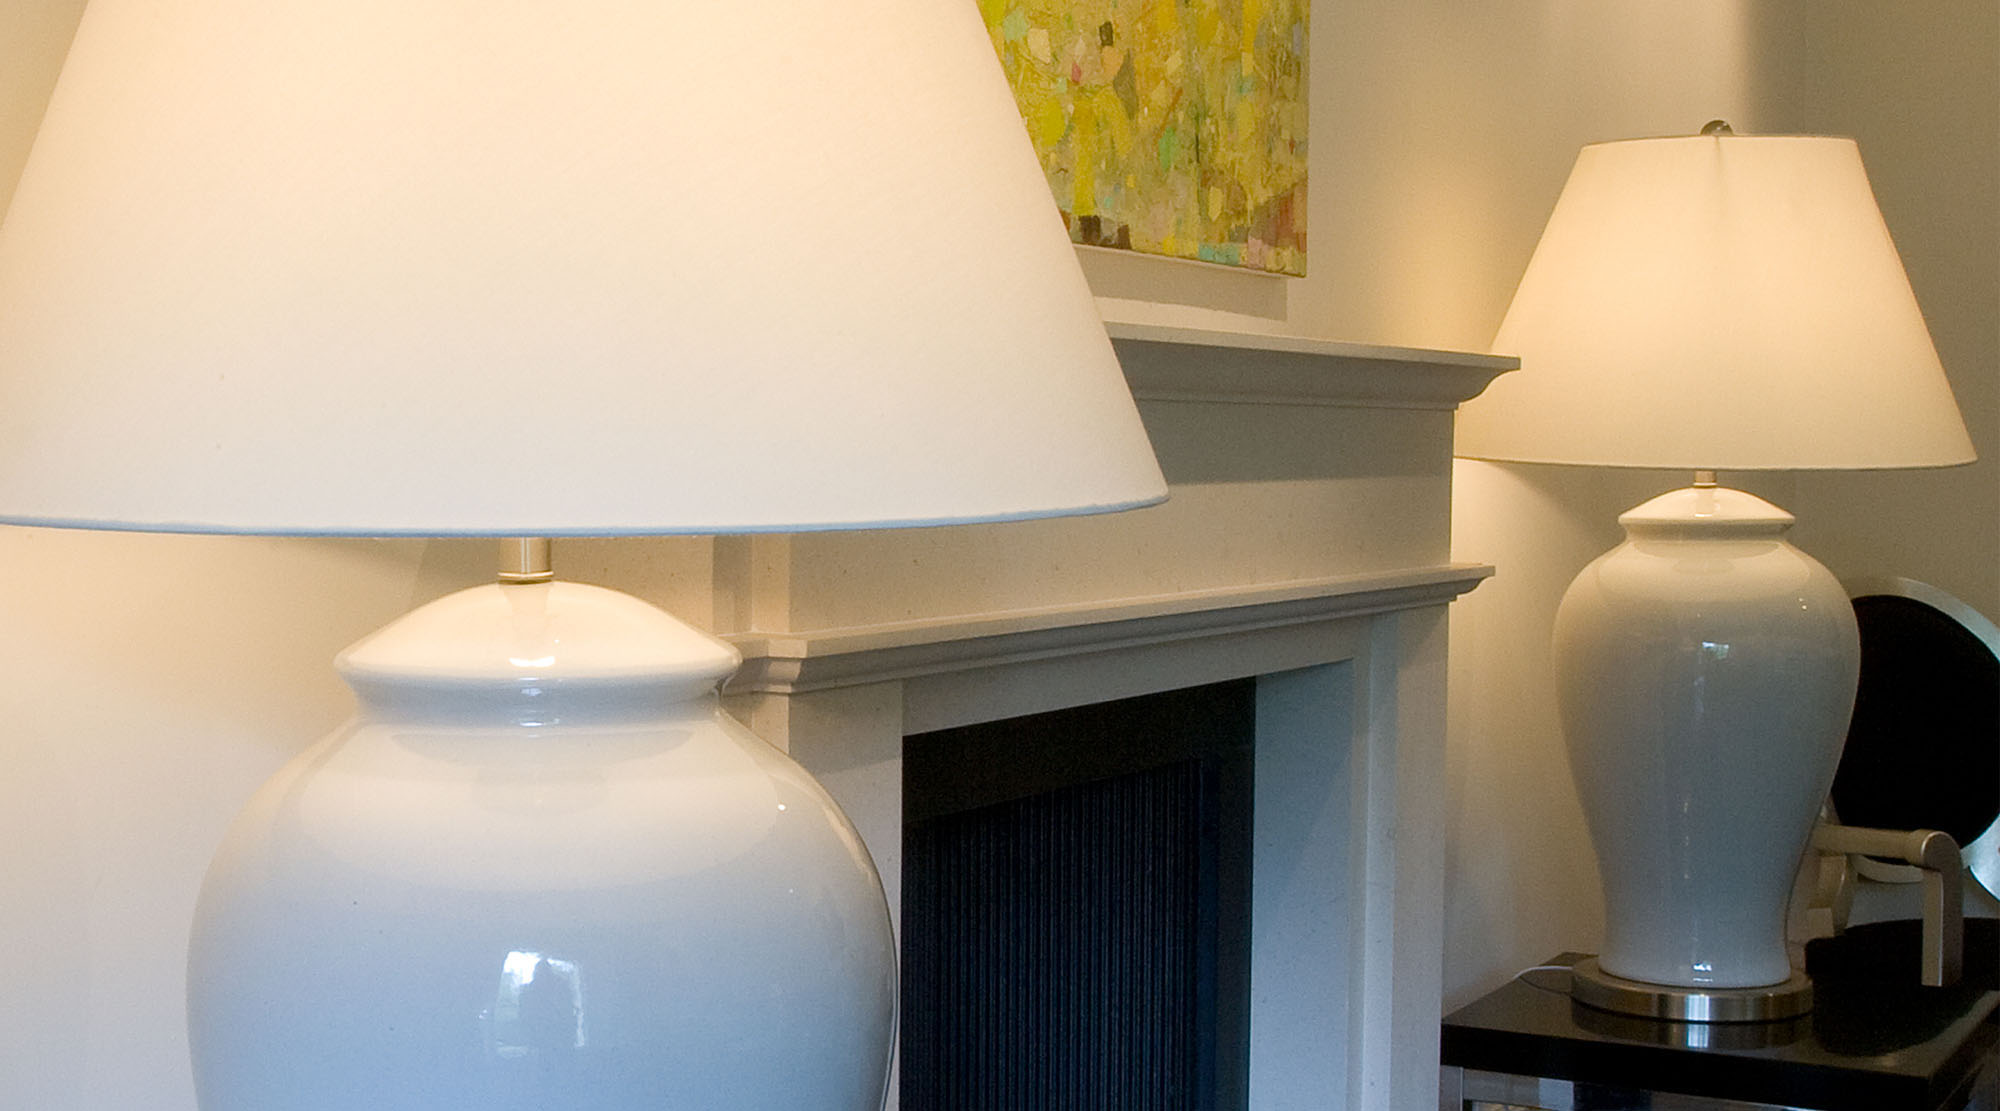 White ceramic table lamps with white shades in a lounge setting.